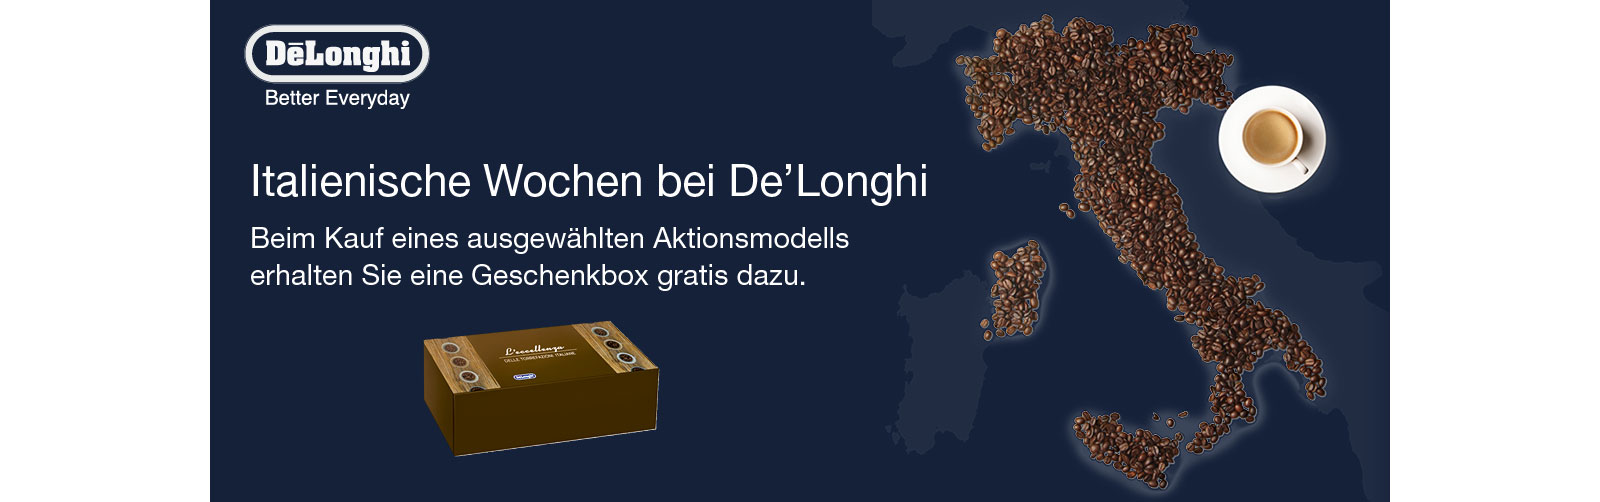 Delonghi-Aktion-Flight_7.jpg